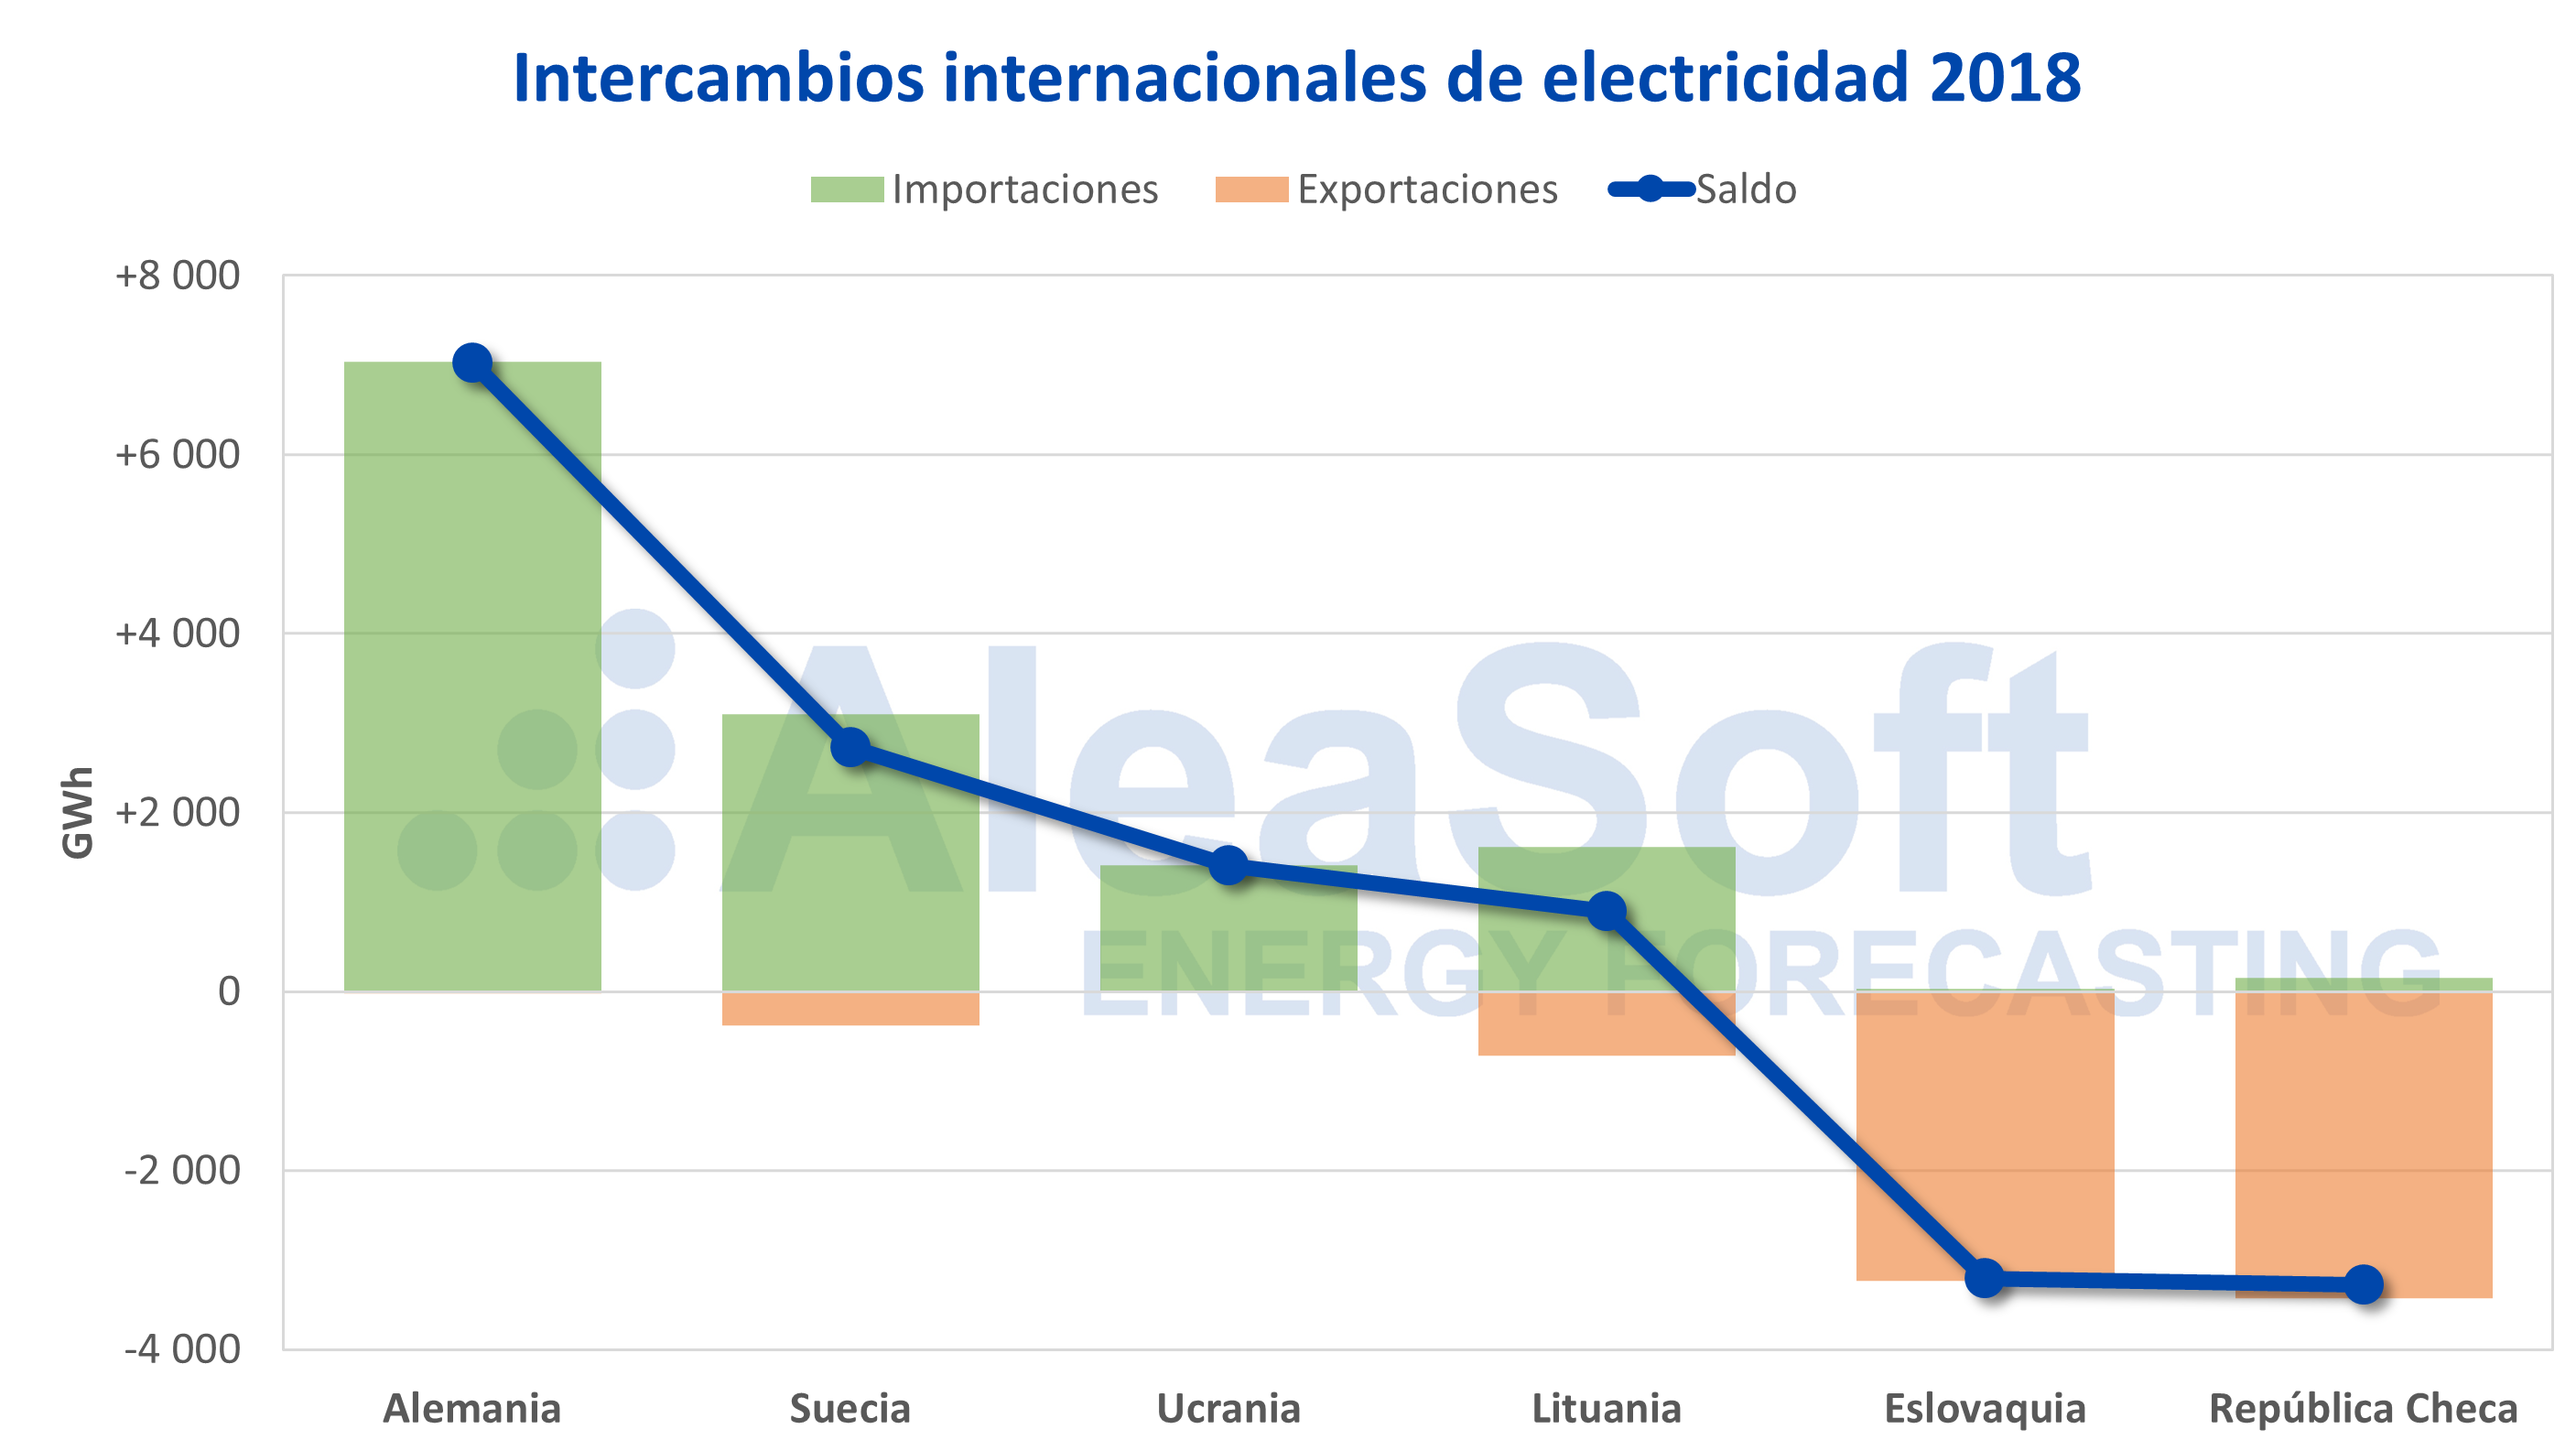 AleaSoft - Polonia intercambios internacionales electricidad 2018